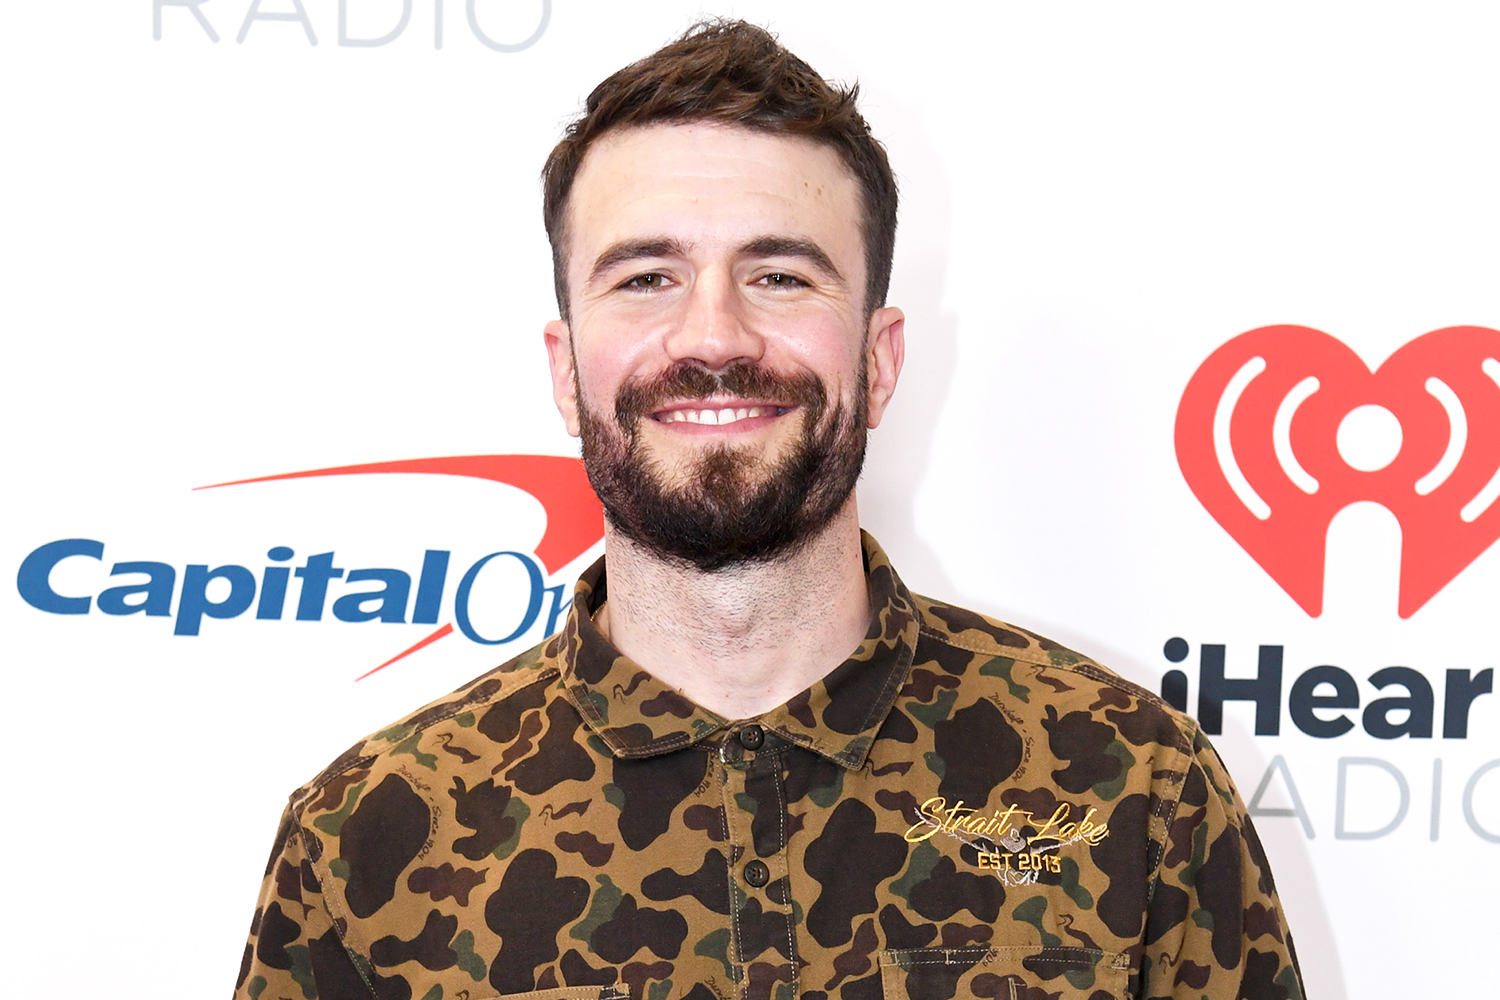 Sam Hunt attends the 2021 iHeartRadio Music Festival on September 18, 2021 at T-Mobile Arena in Las Vegas, Nevada.